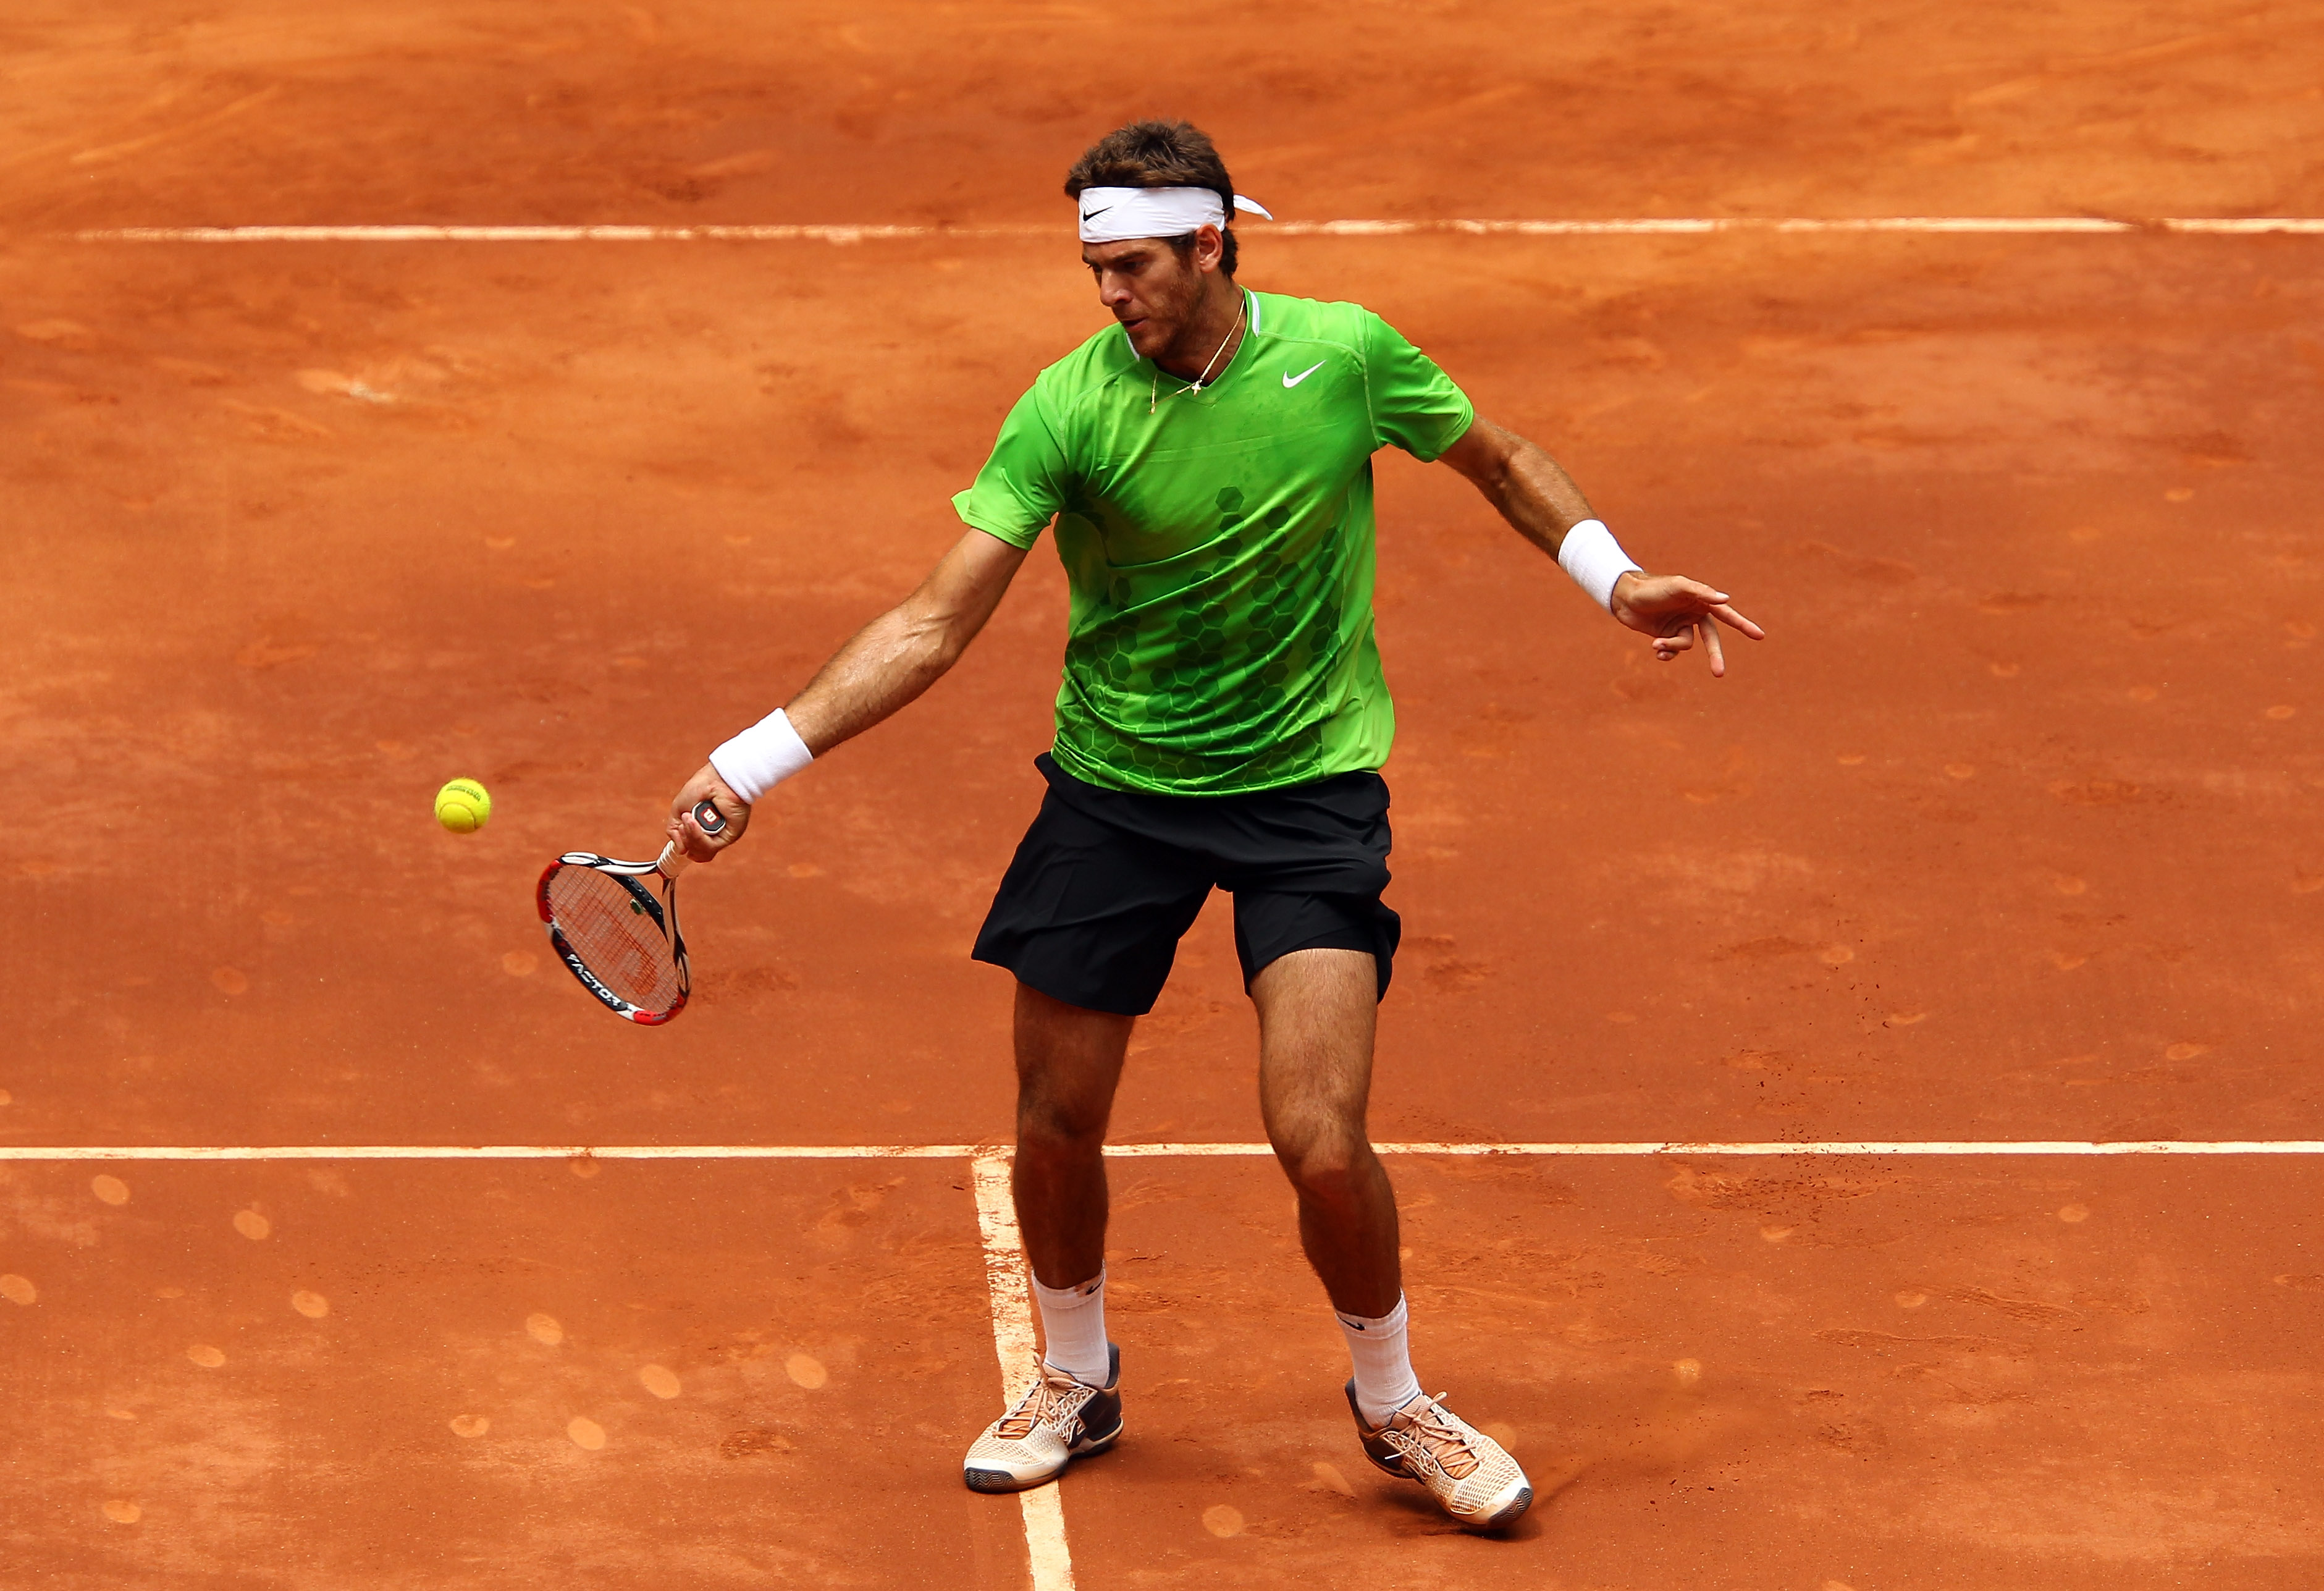 MADRID, SPAIN - MAY 03:  Juan Martin Del Potro of Argentina plays a forehand in his match against Mikhail Youzhny of Russia during day four of the Mutua Madrilena Madrid Open Tennis on May 3, 2011 in Madrid, Spain.  (Photo by Julian Finney/Getty Images)